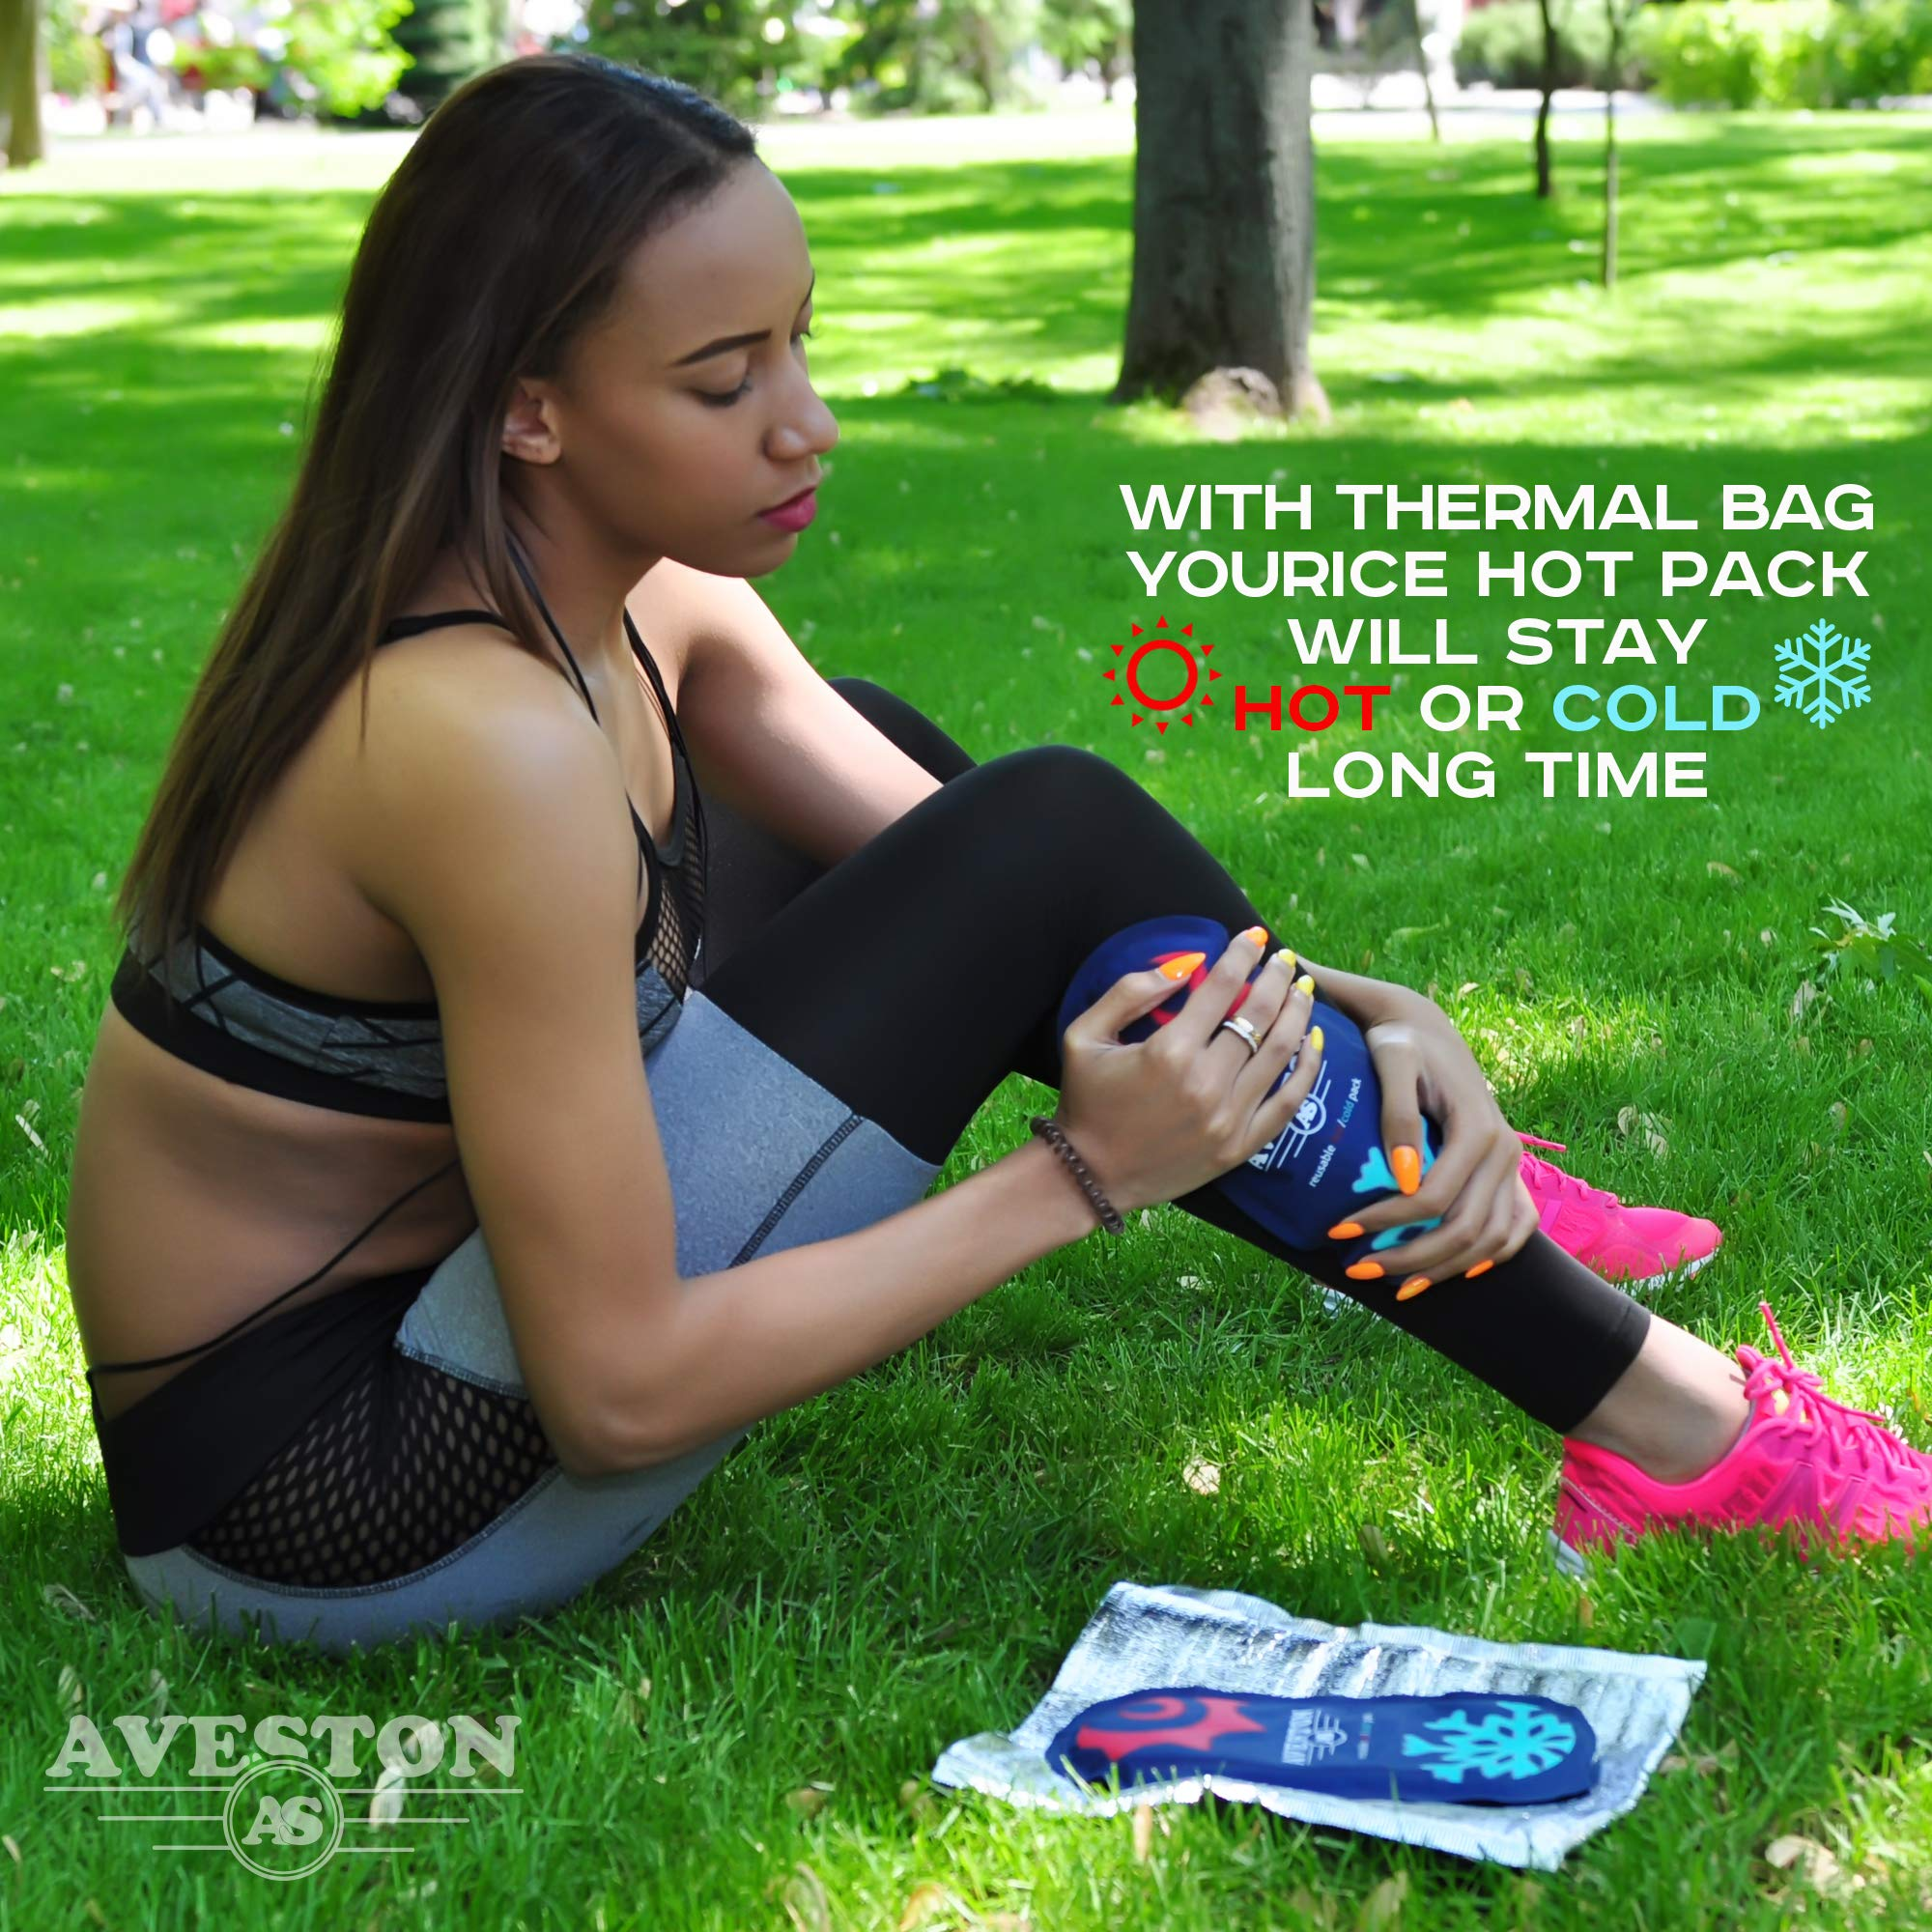 AVESTON Ice Gel Cold Pack for Injuries – Reusable Flexible 2 Ice Packs Set for Knee Ankle Back Shoulder Neck Hot Cold Therapy Compress for Women Men + Free Thermal Bag by AVESTON (Image #9)